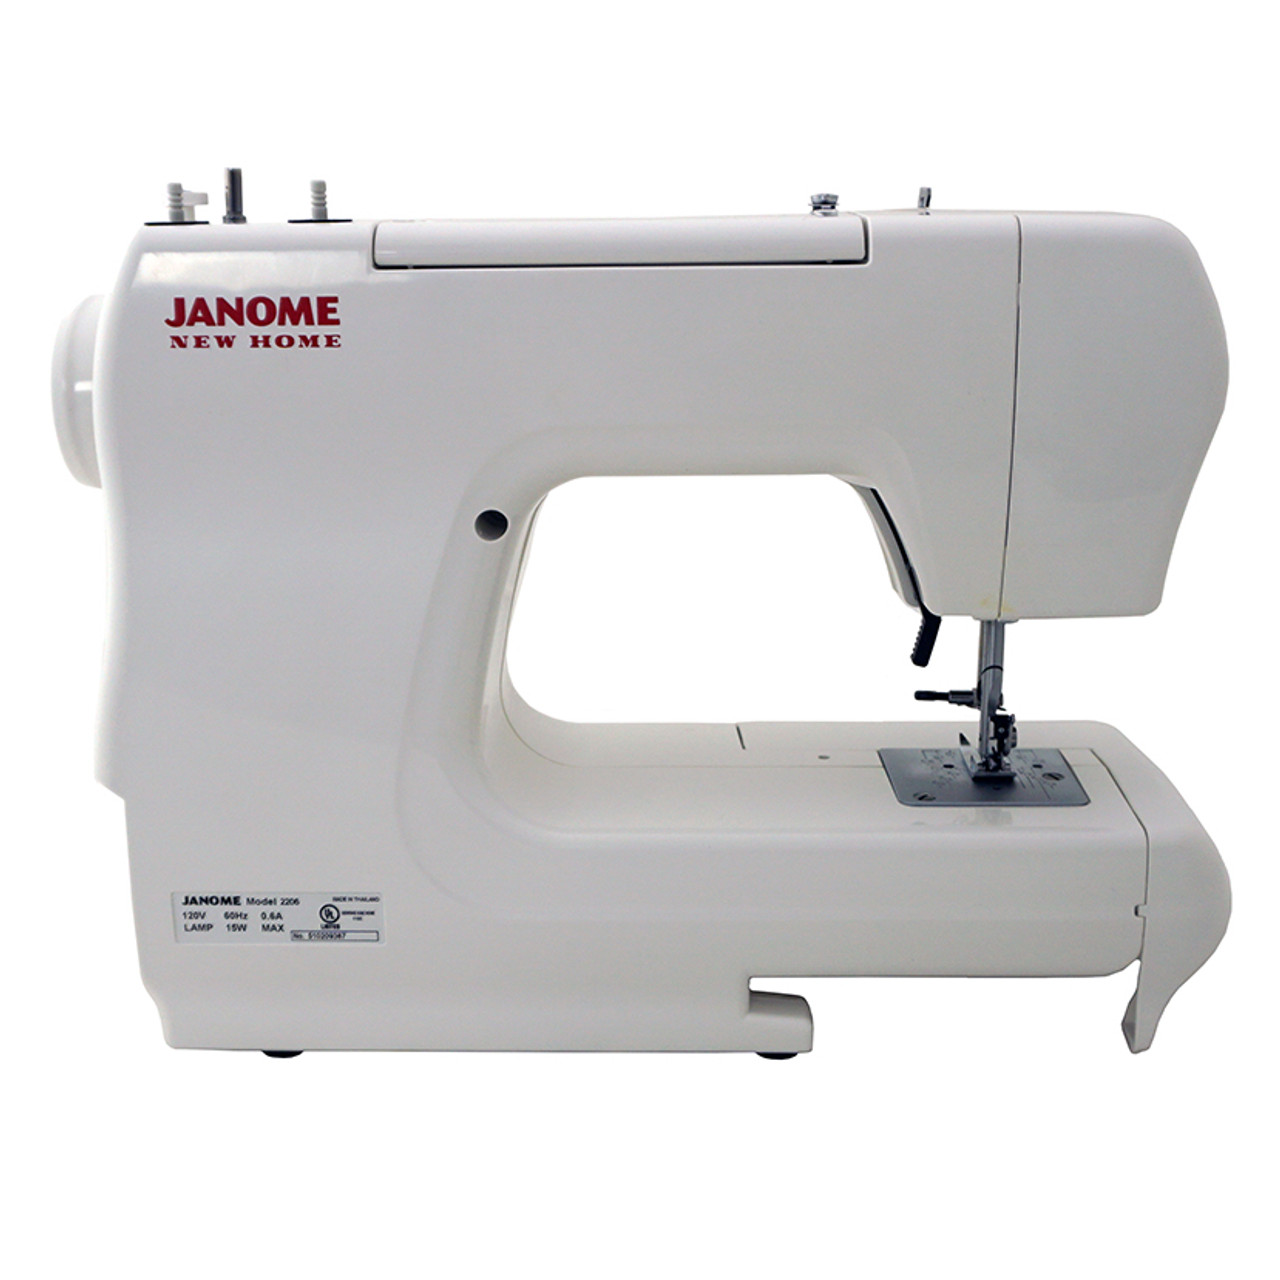 Janome 40 Sewing Machine With Exclusive Bonus Bundle 4040 Adorable Janome 2206 Sewing Machine Reviews